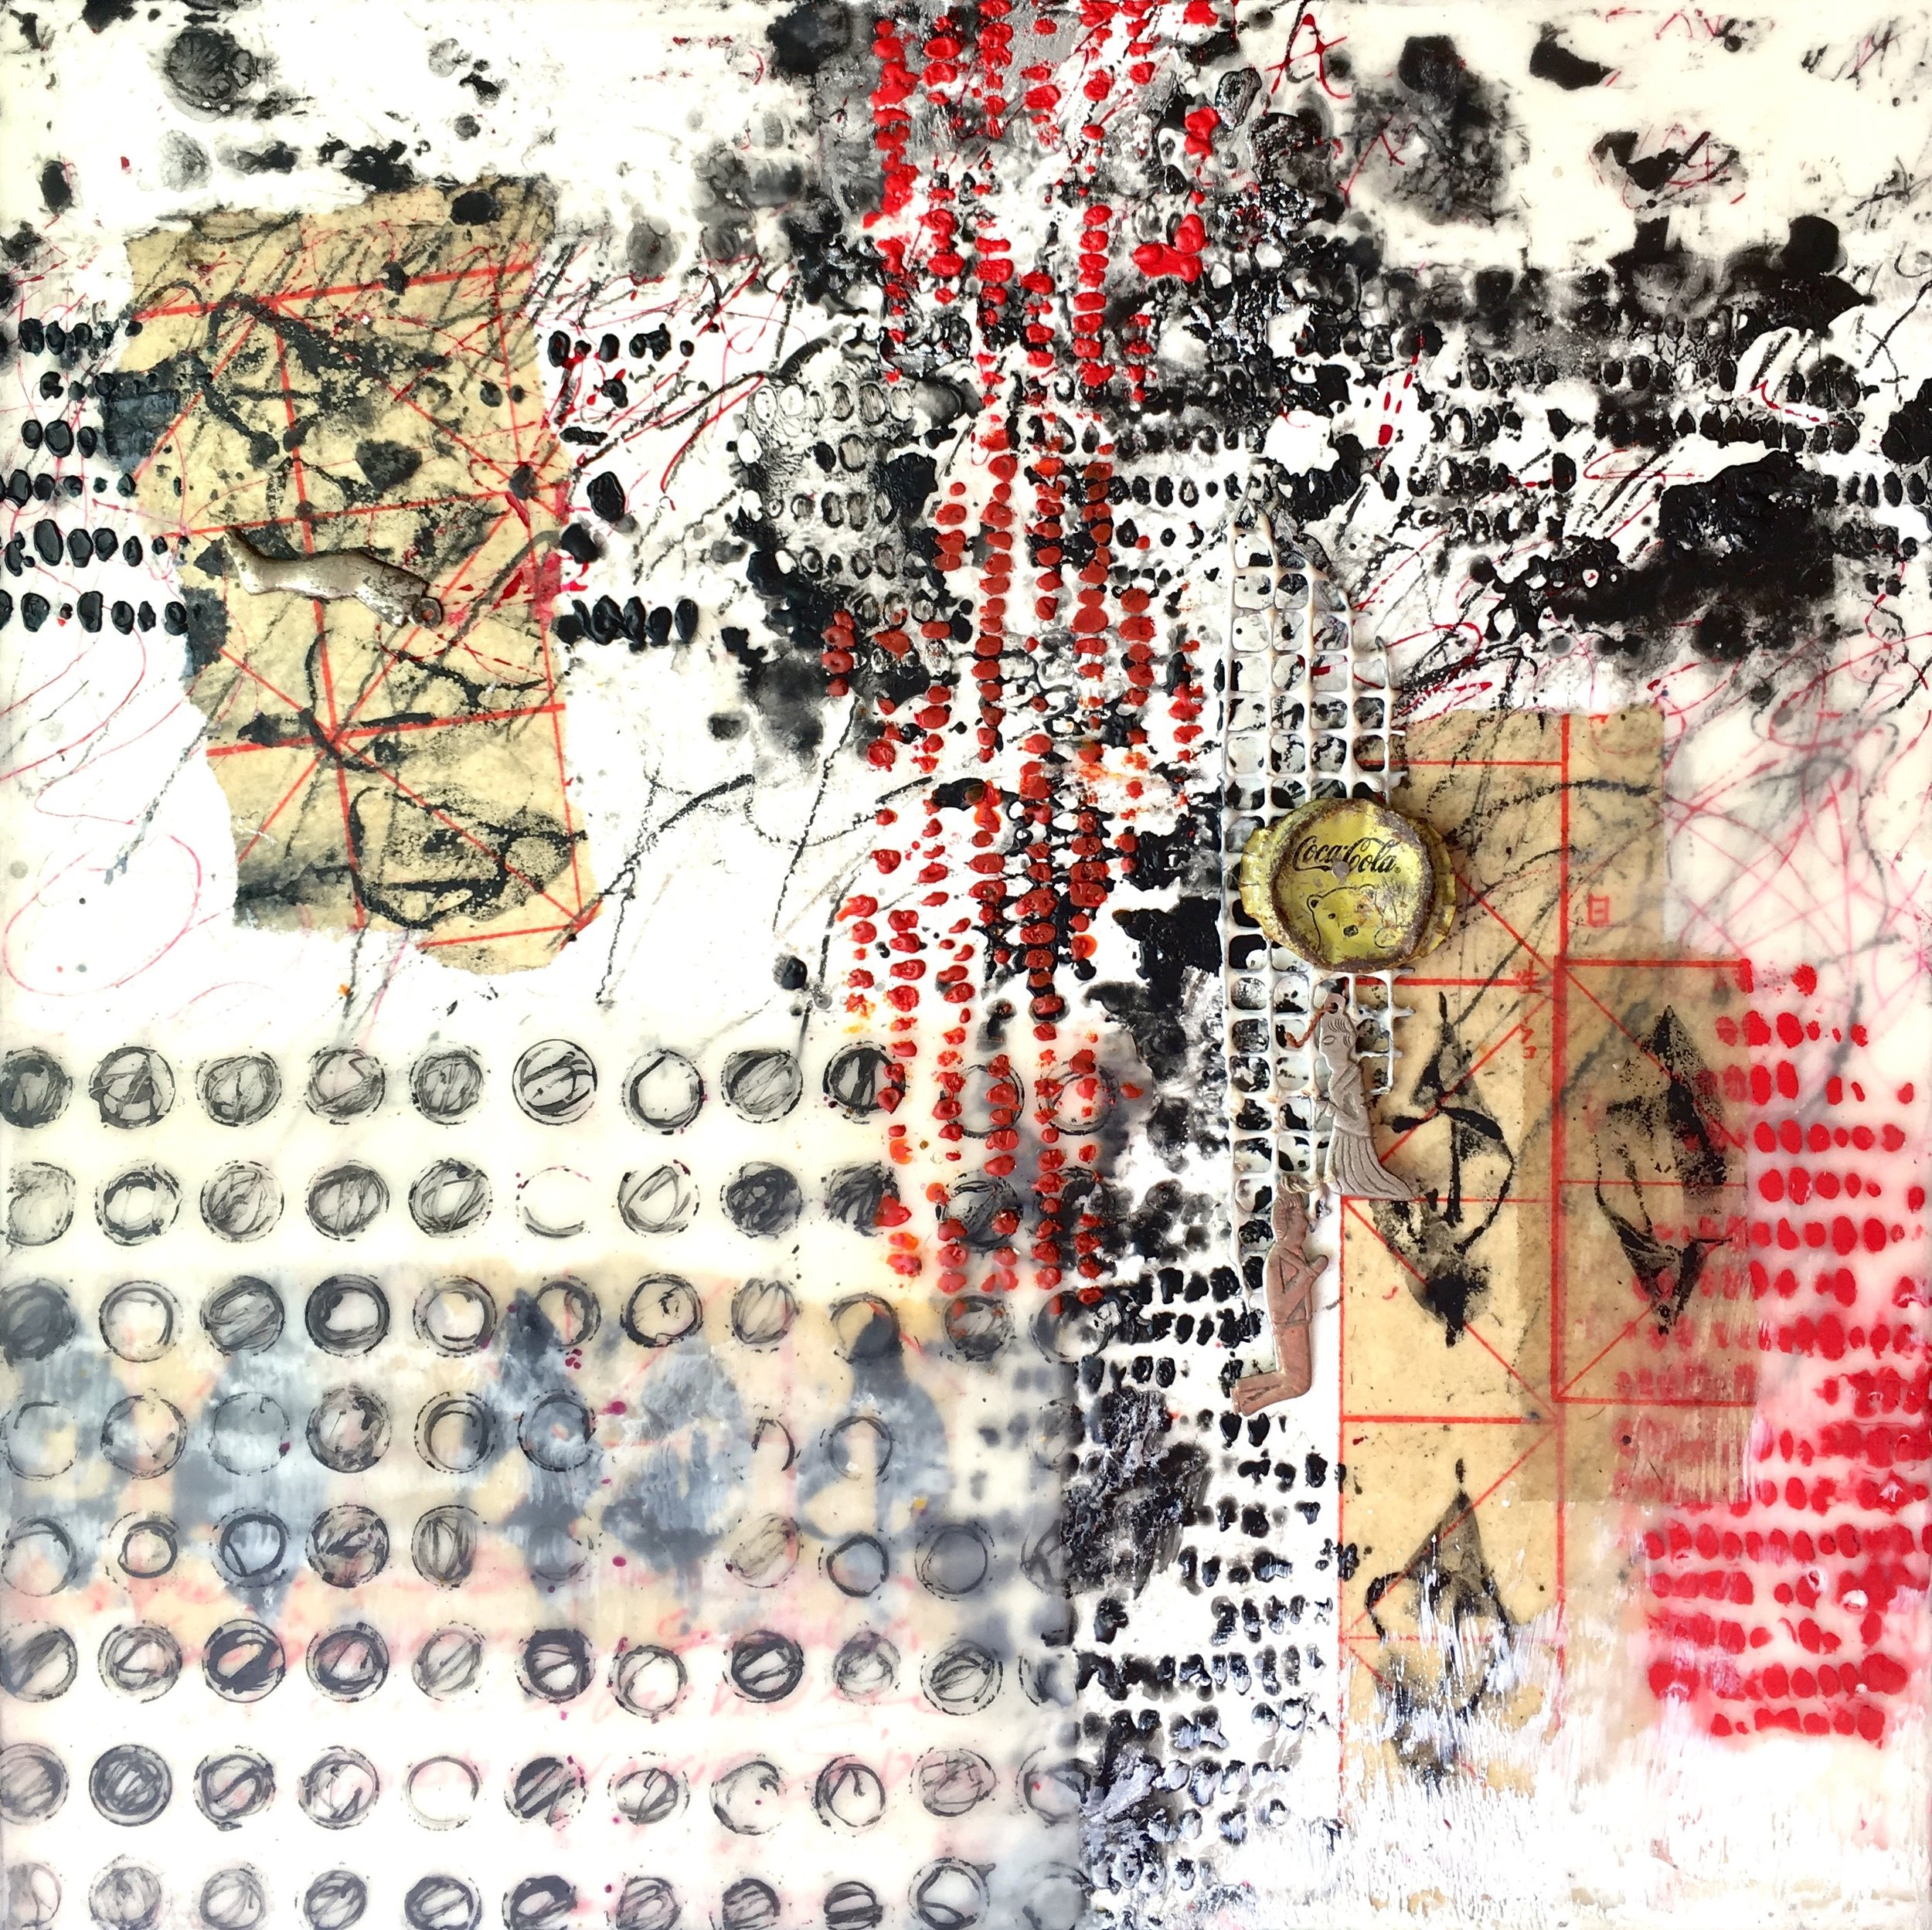 """Cruce Silencioso (Silent Crossing) encaustic, mixed media, metal, found objects, 12x12"""""""